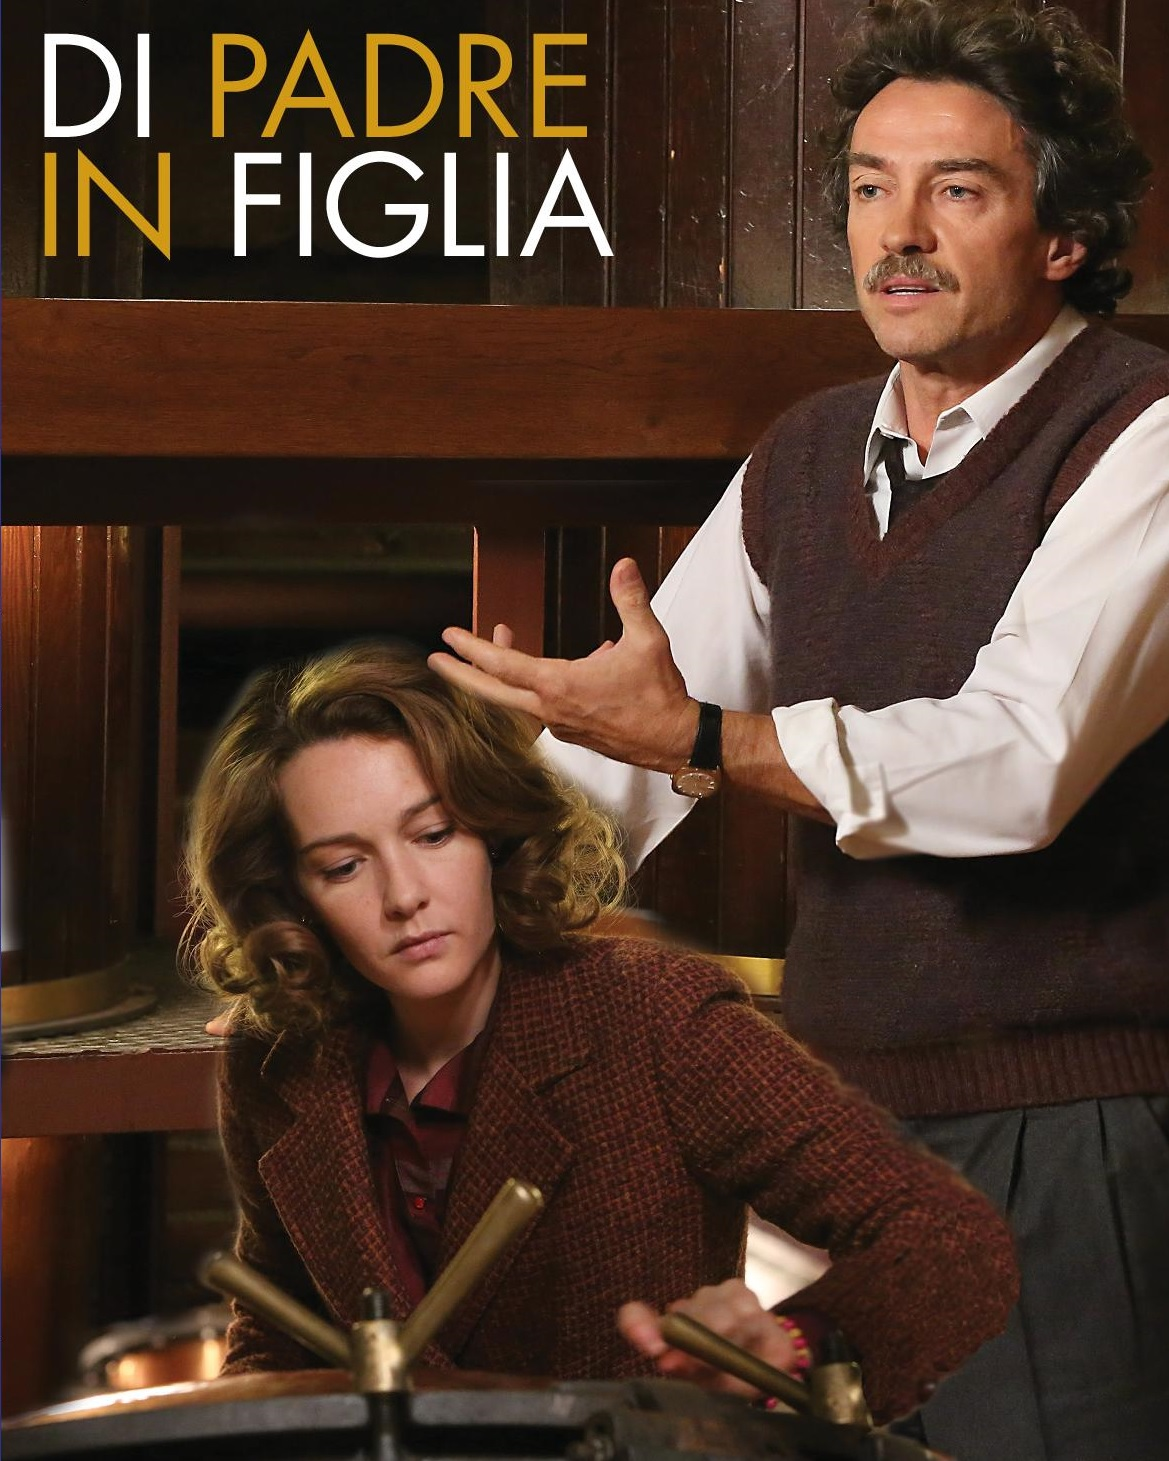 Di padre in figlia (TV Mini-Series 2017) - IMDb 0d6e793c4ef